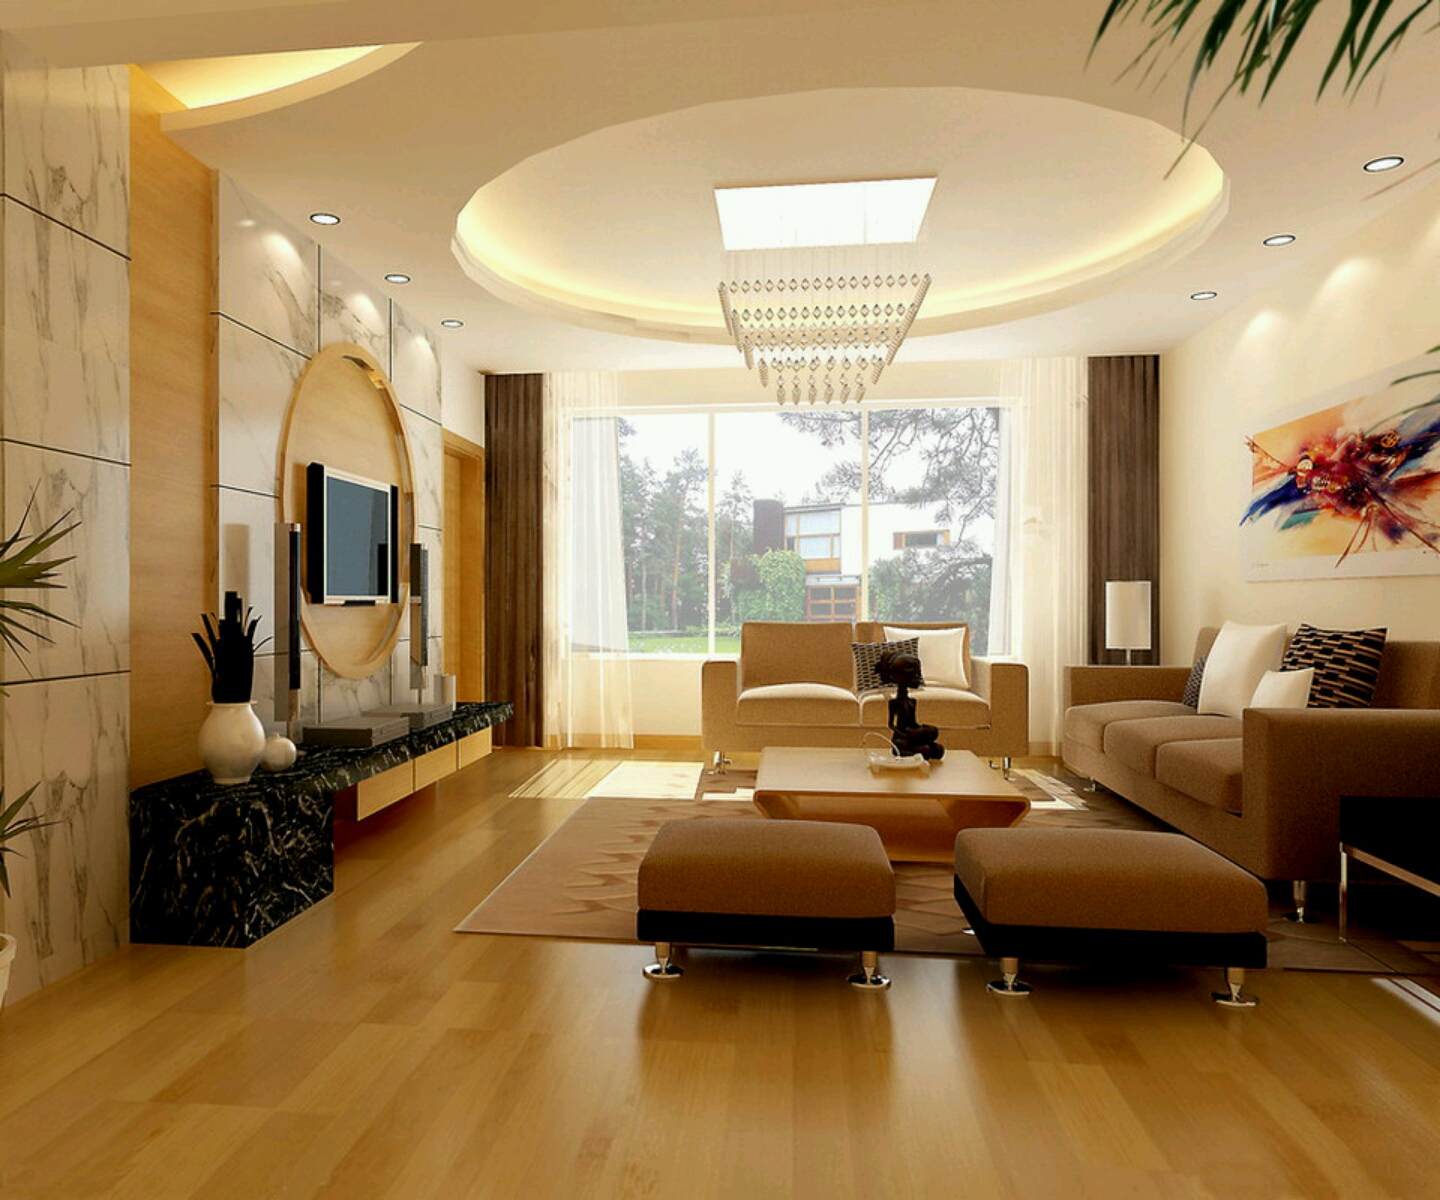 Modern interior decoration living rooms ceiling designs for Home living decor